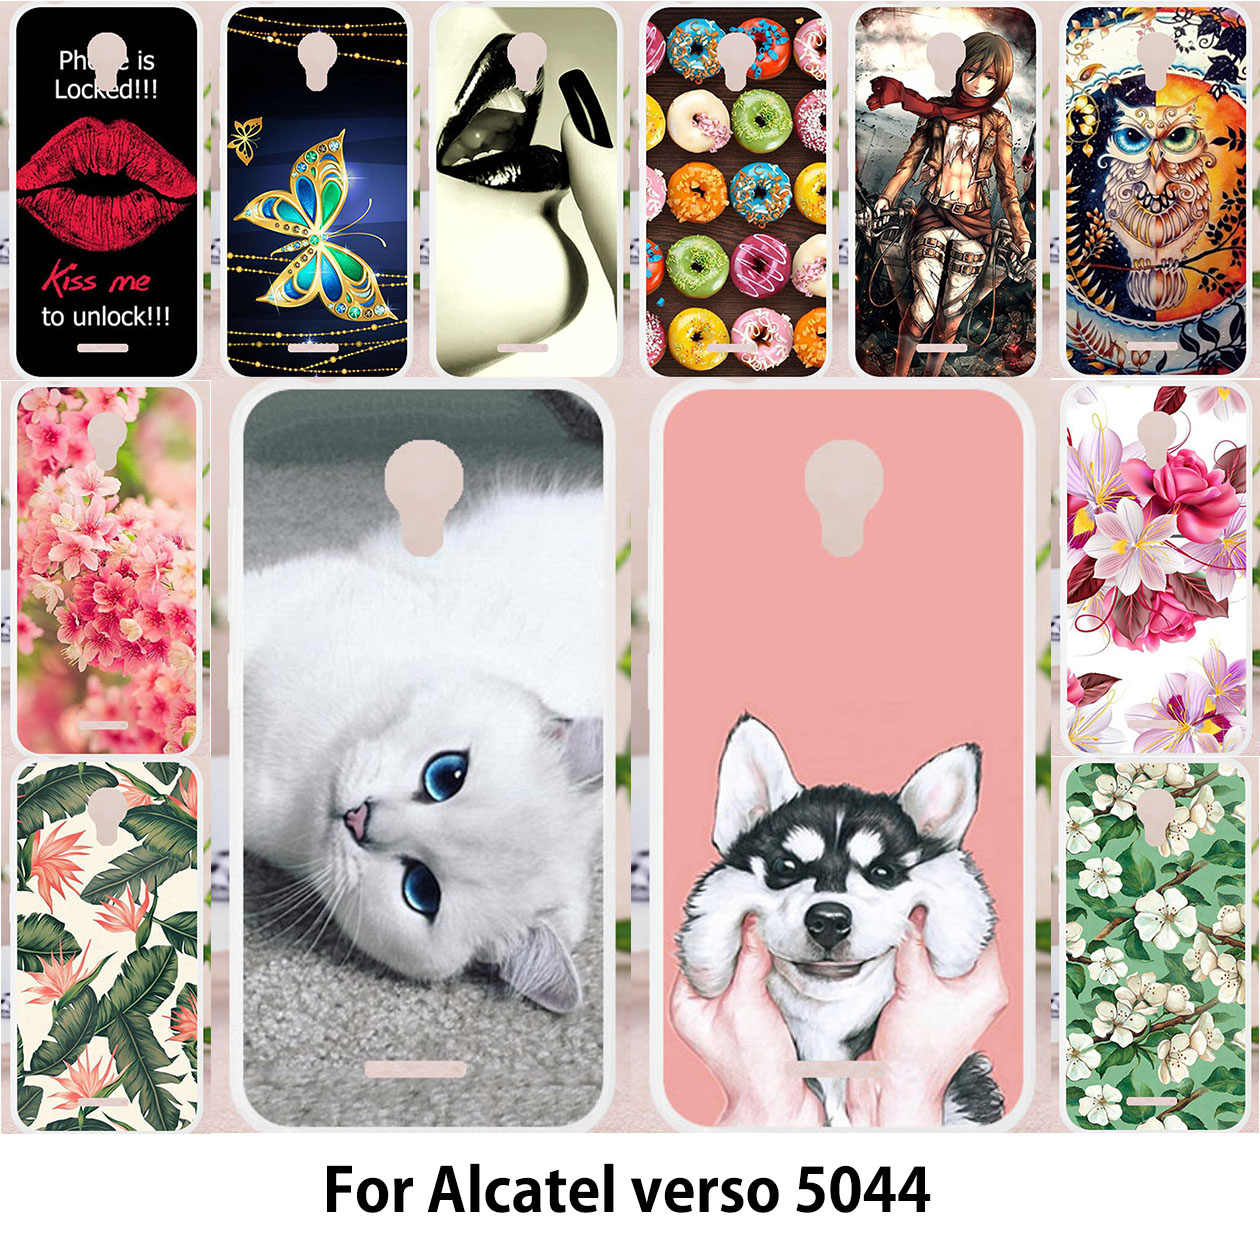 TAOYUNXI Case For Alcatel 5044R Verso idealXCITE Cameo X 5044R Raven LTE  A574BL Cover Silicone Paint Cases Cat Animal Patterned